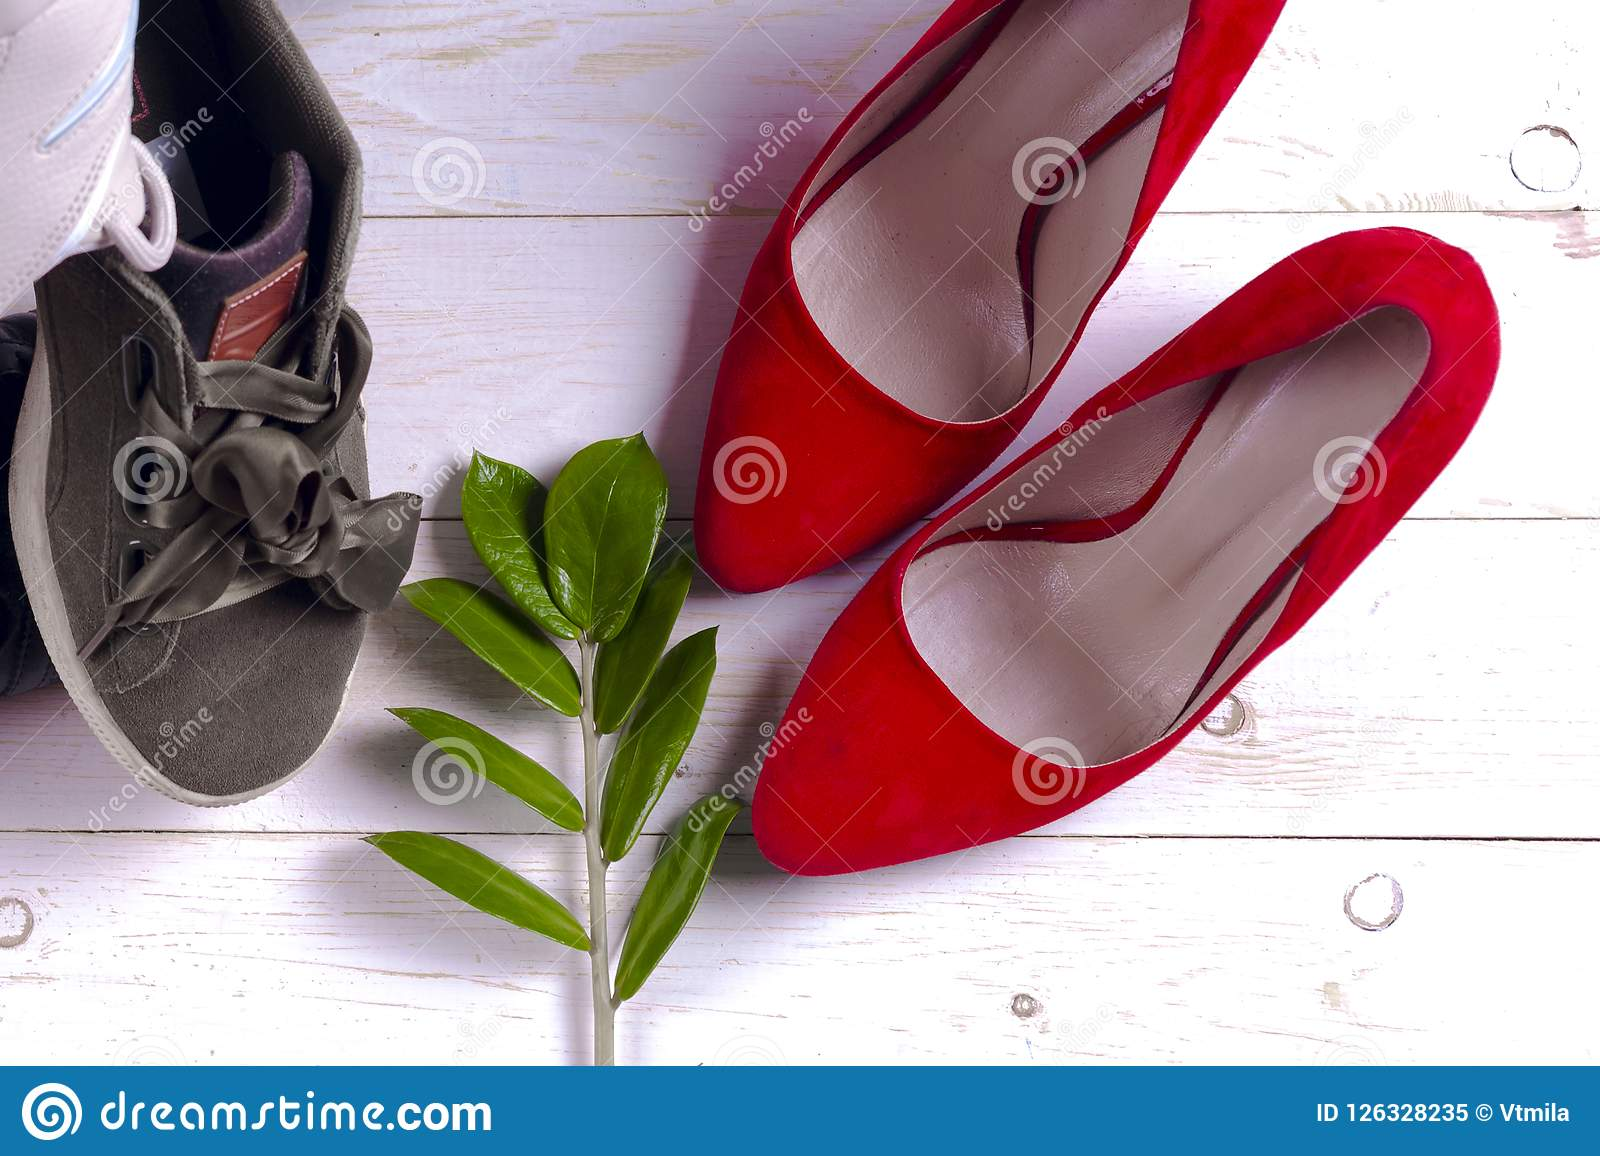 be8d9edc07da Big heap of different sports shoes and red high heel women`s shoes on white